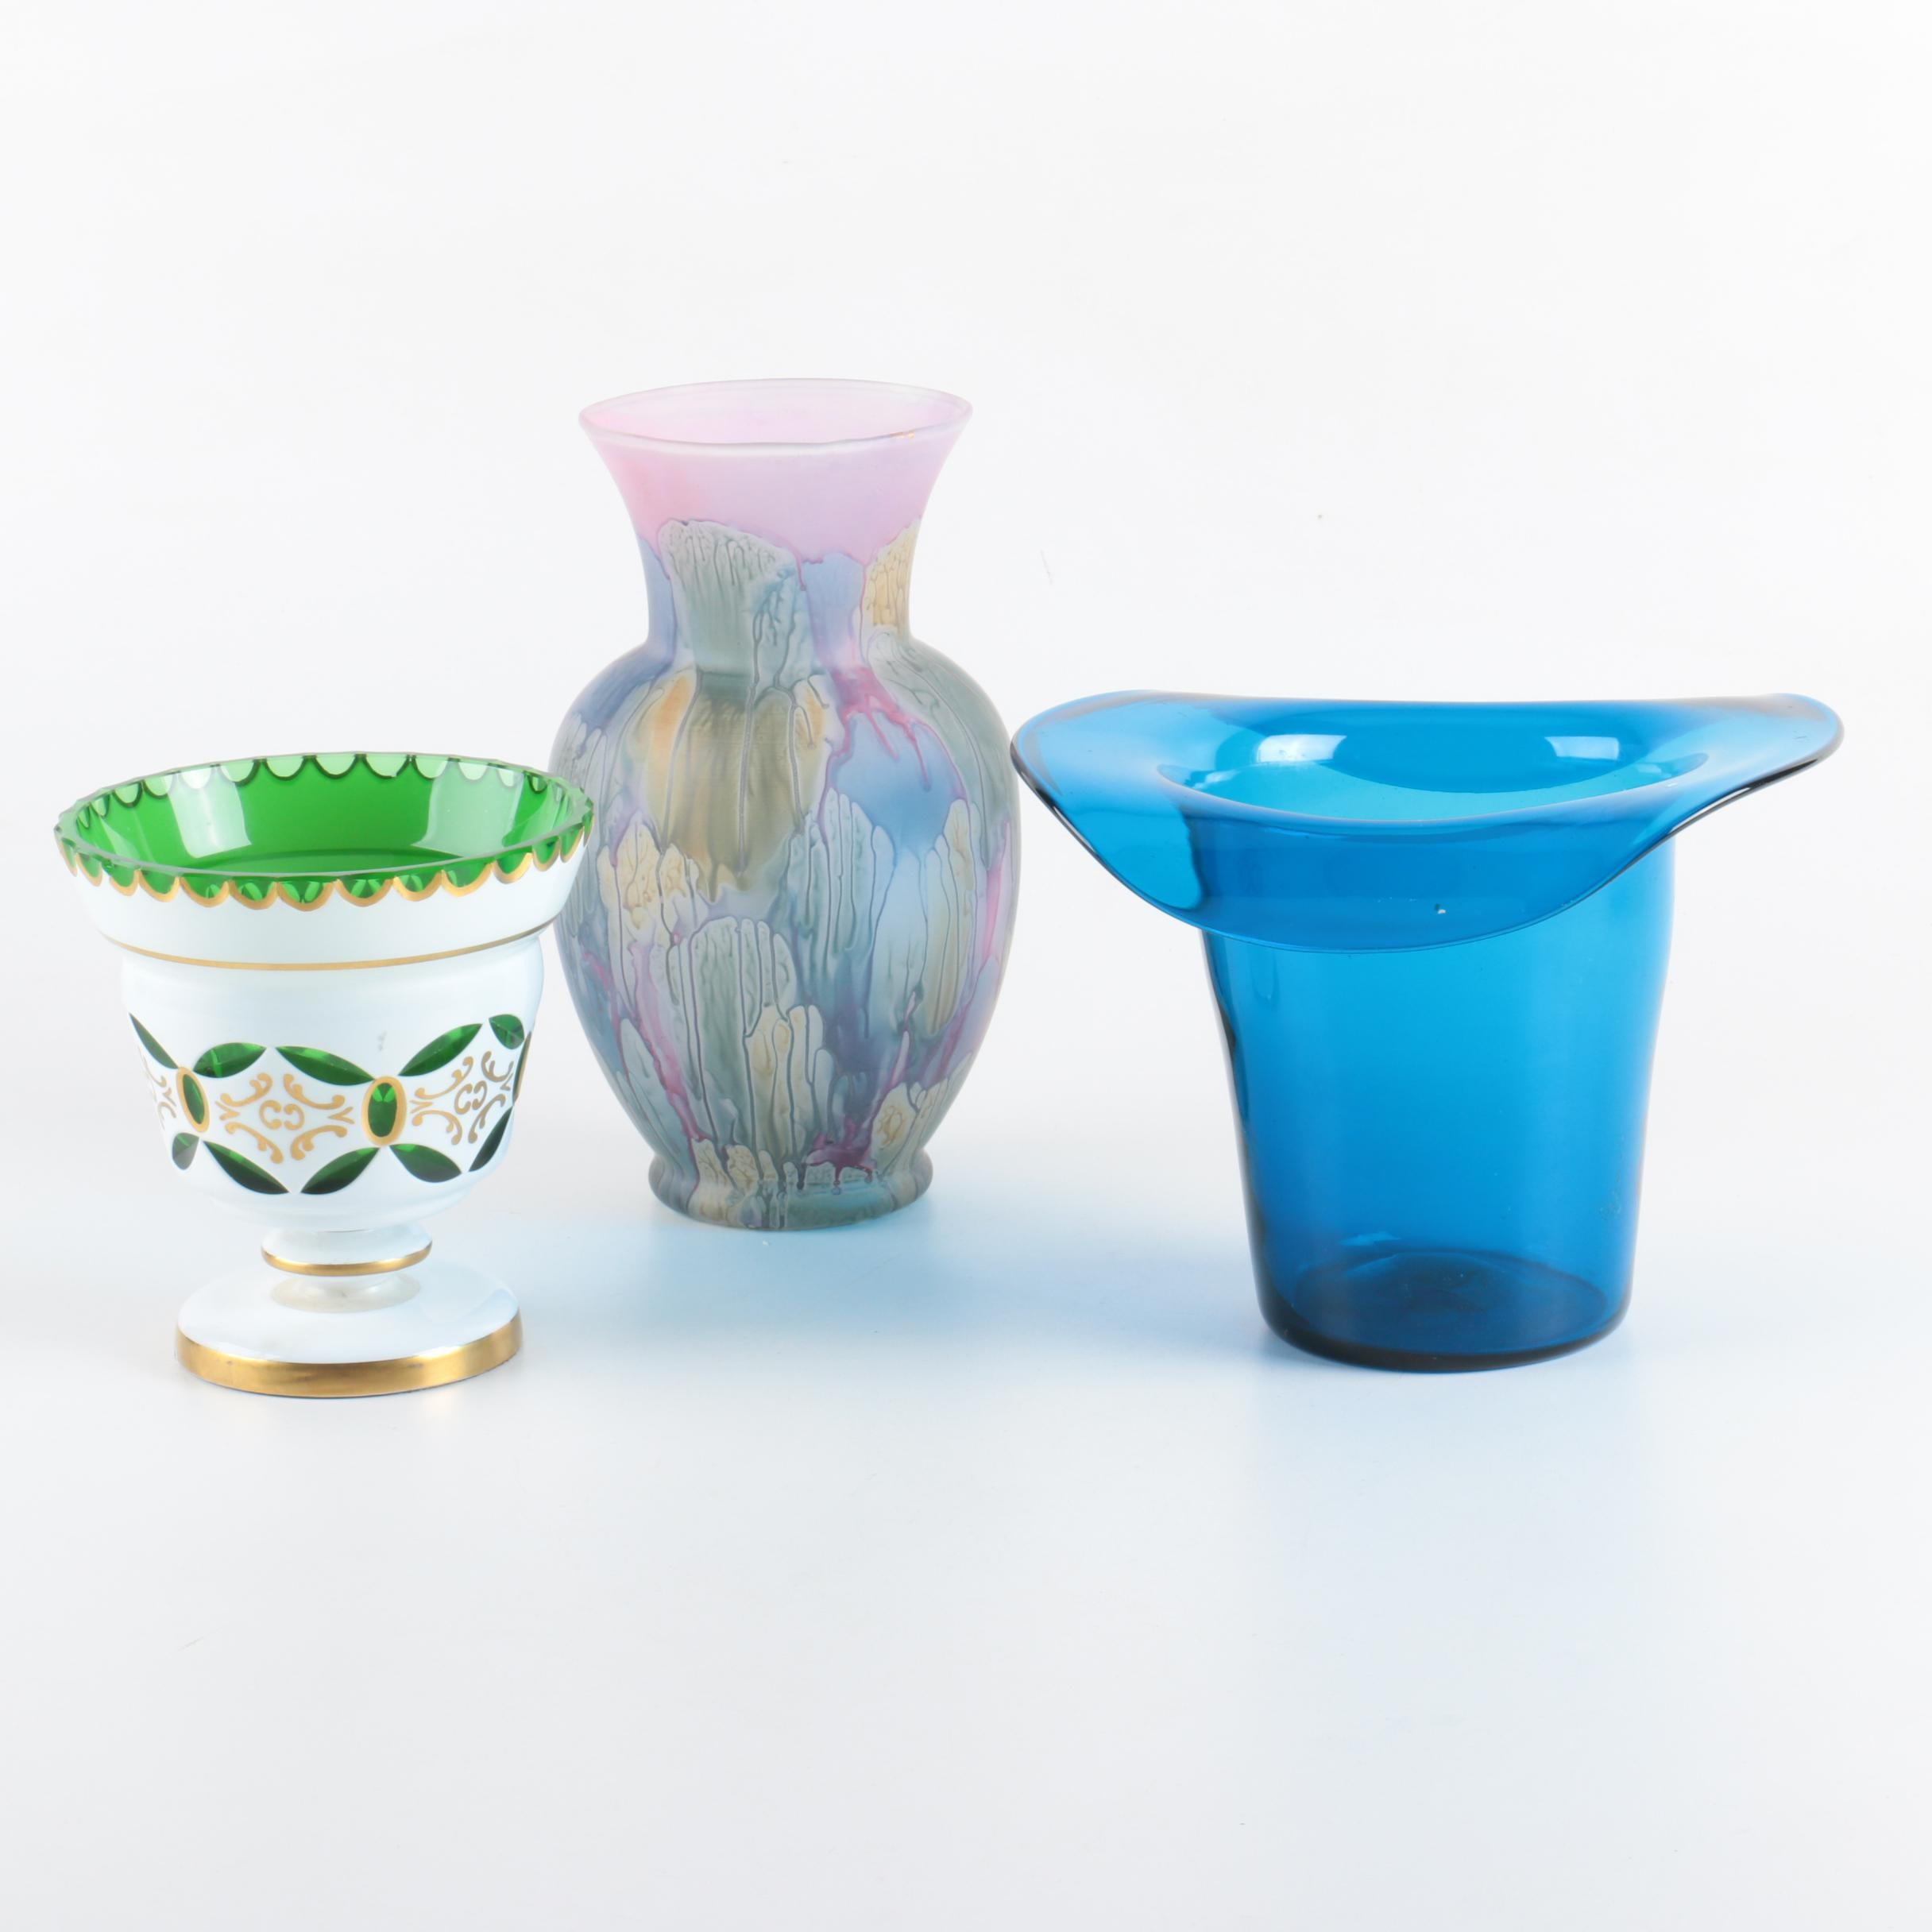 Vases Including Hand-Painted Rueven Glass and Mouth Blown